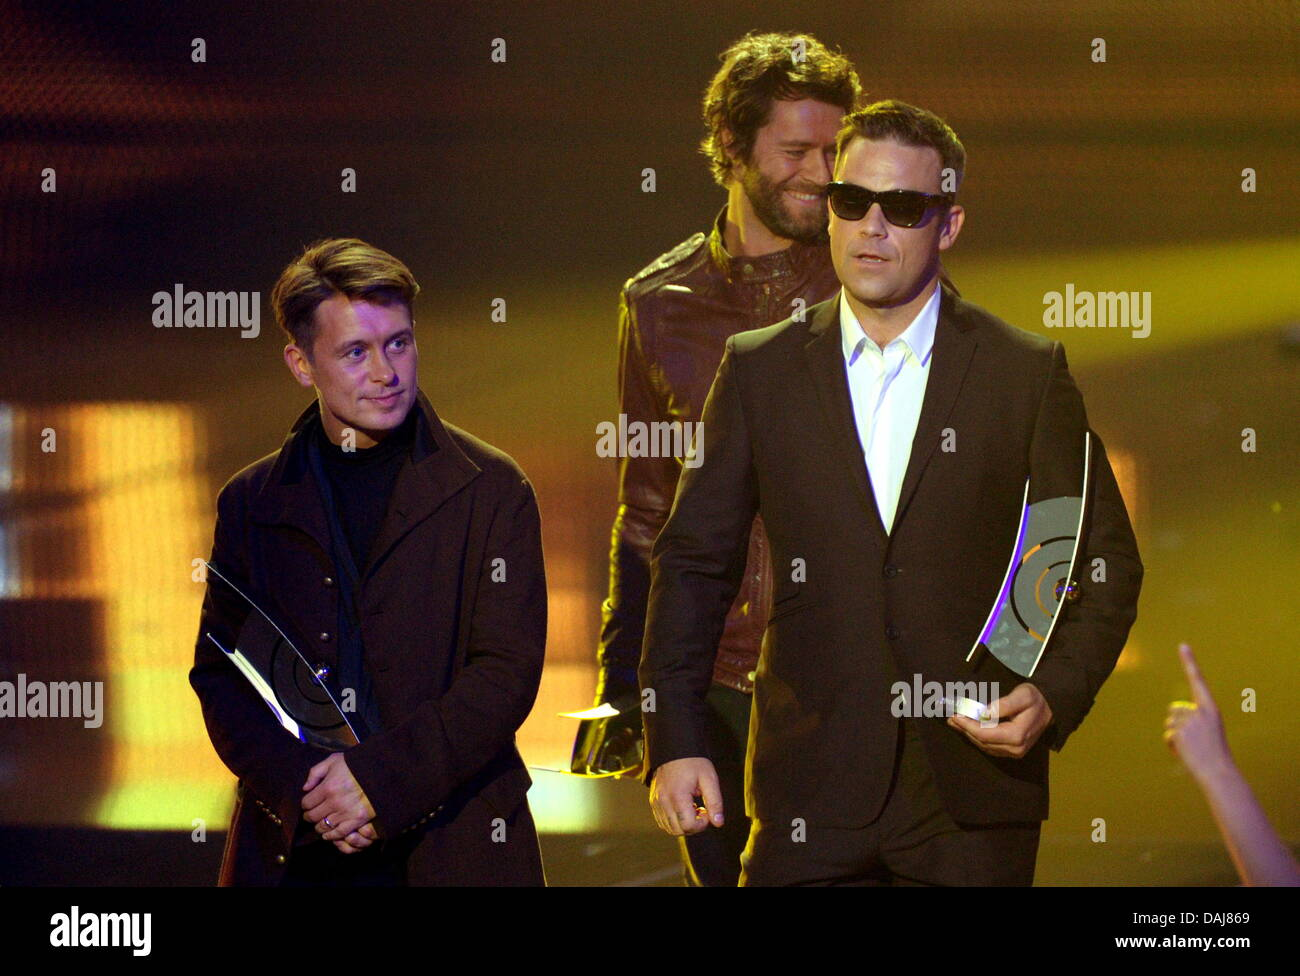 Mark Owen (lr), Howard Donald And Robbie Williams (c) Of British Band Take  That Receive The 2011 Echo Music Award In The Category Best International  Group